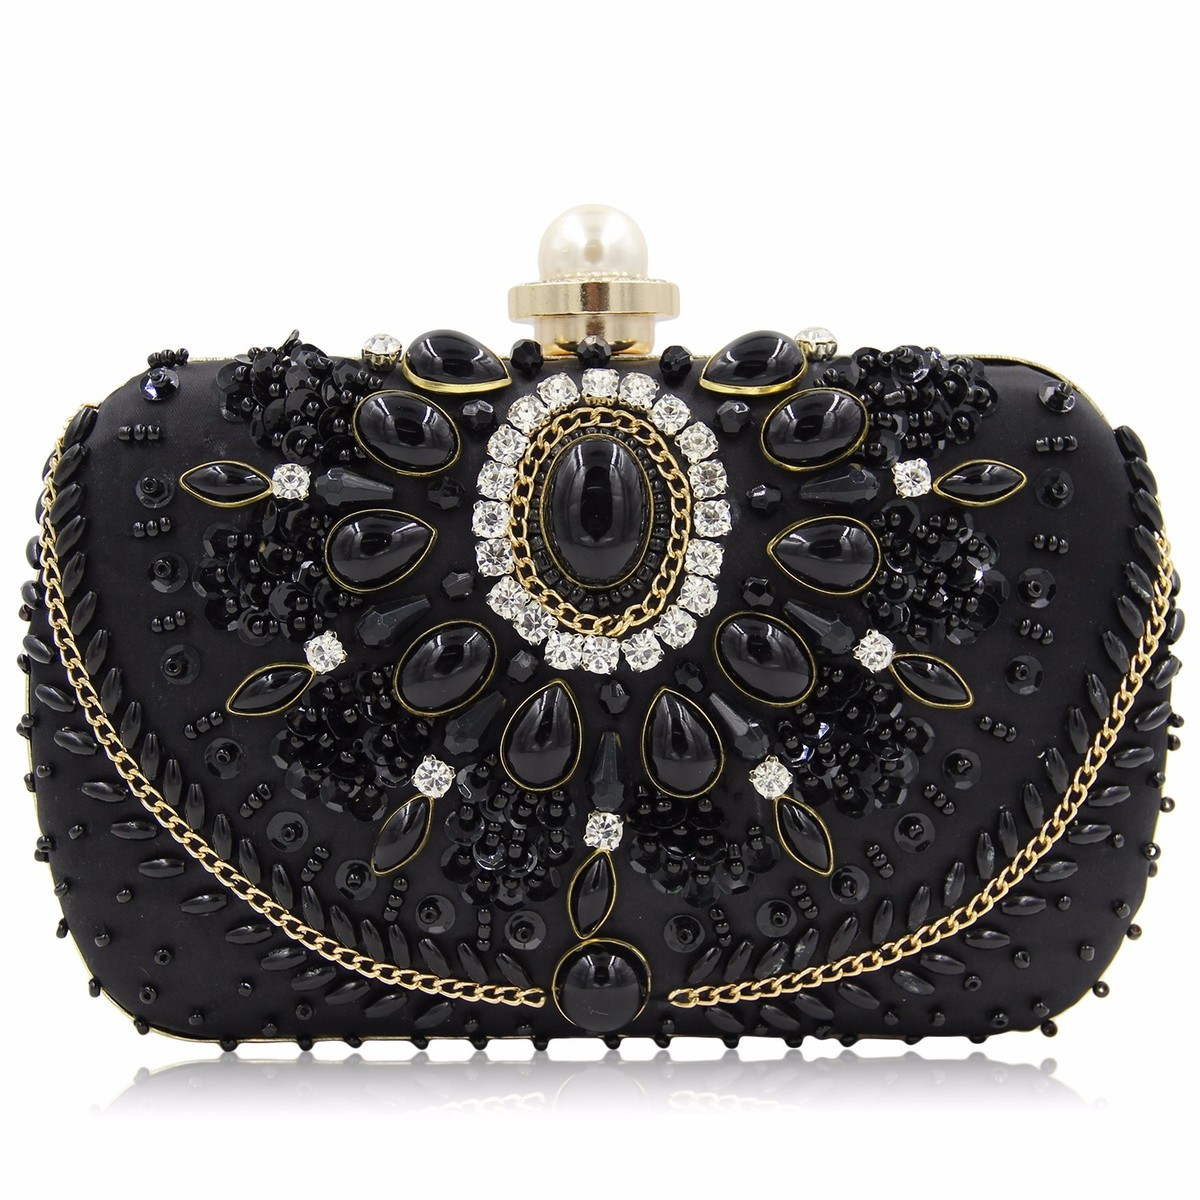 9a74b76d4e Mystic River Brand Women Clutch Bags Bridal Wedding Party Purses Camel  Clutch Purse-in Clutches from Luggage & Bags on Aliexpress.com   Alibaba  Group